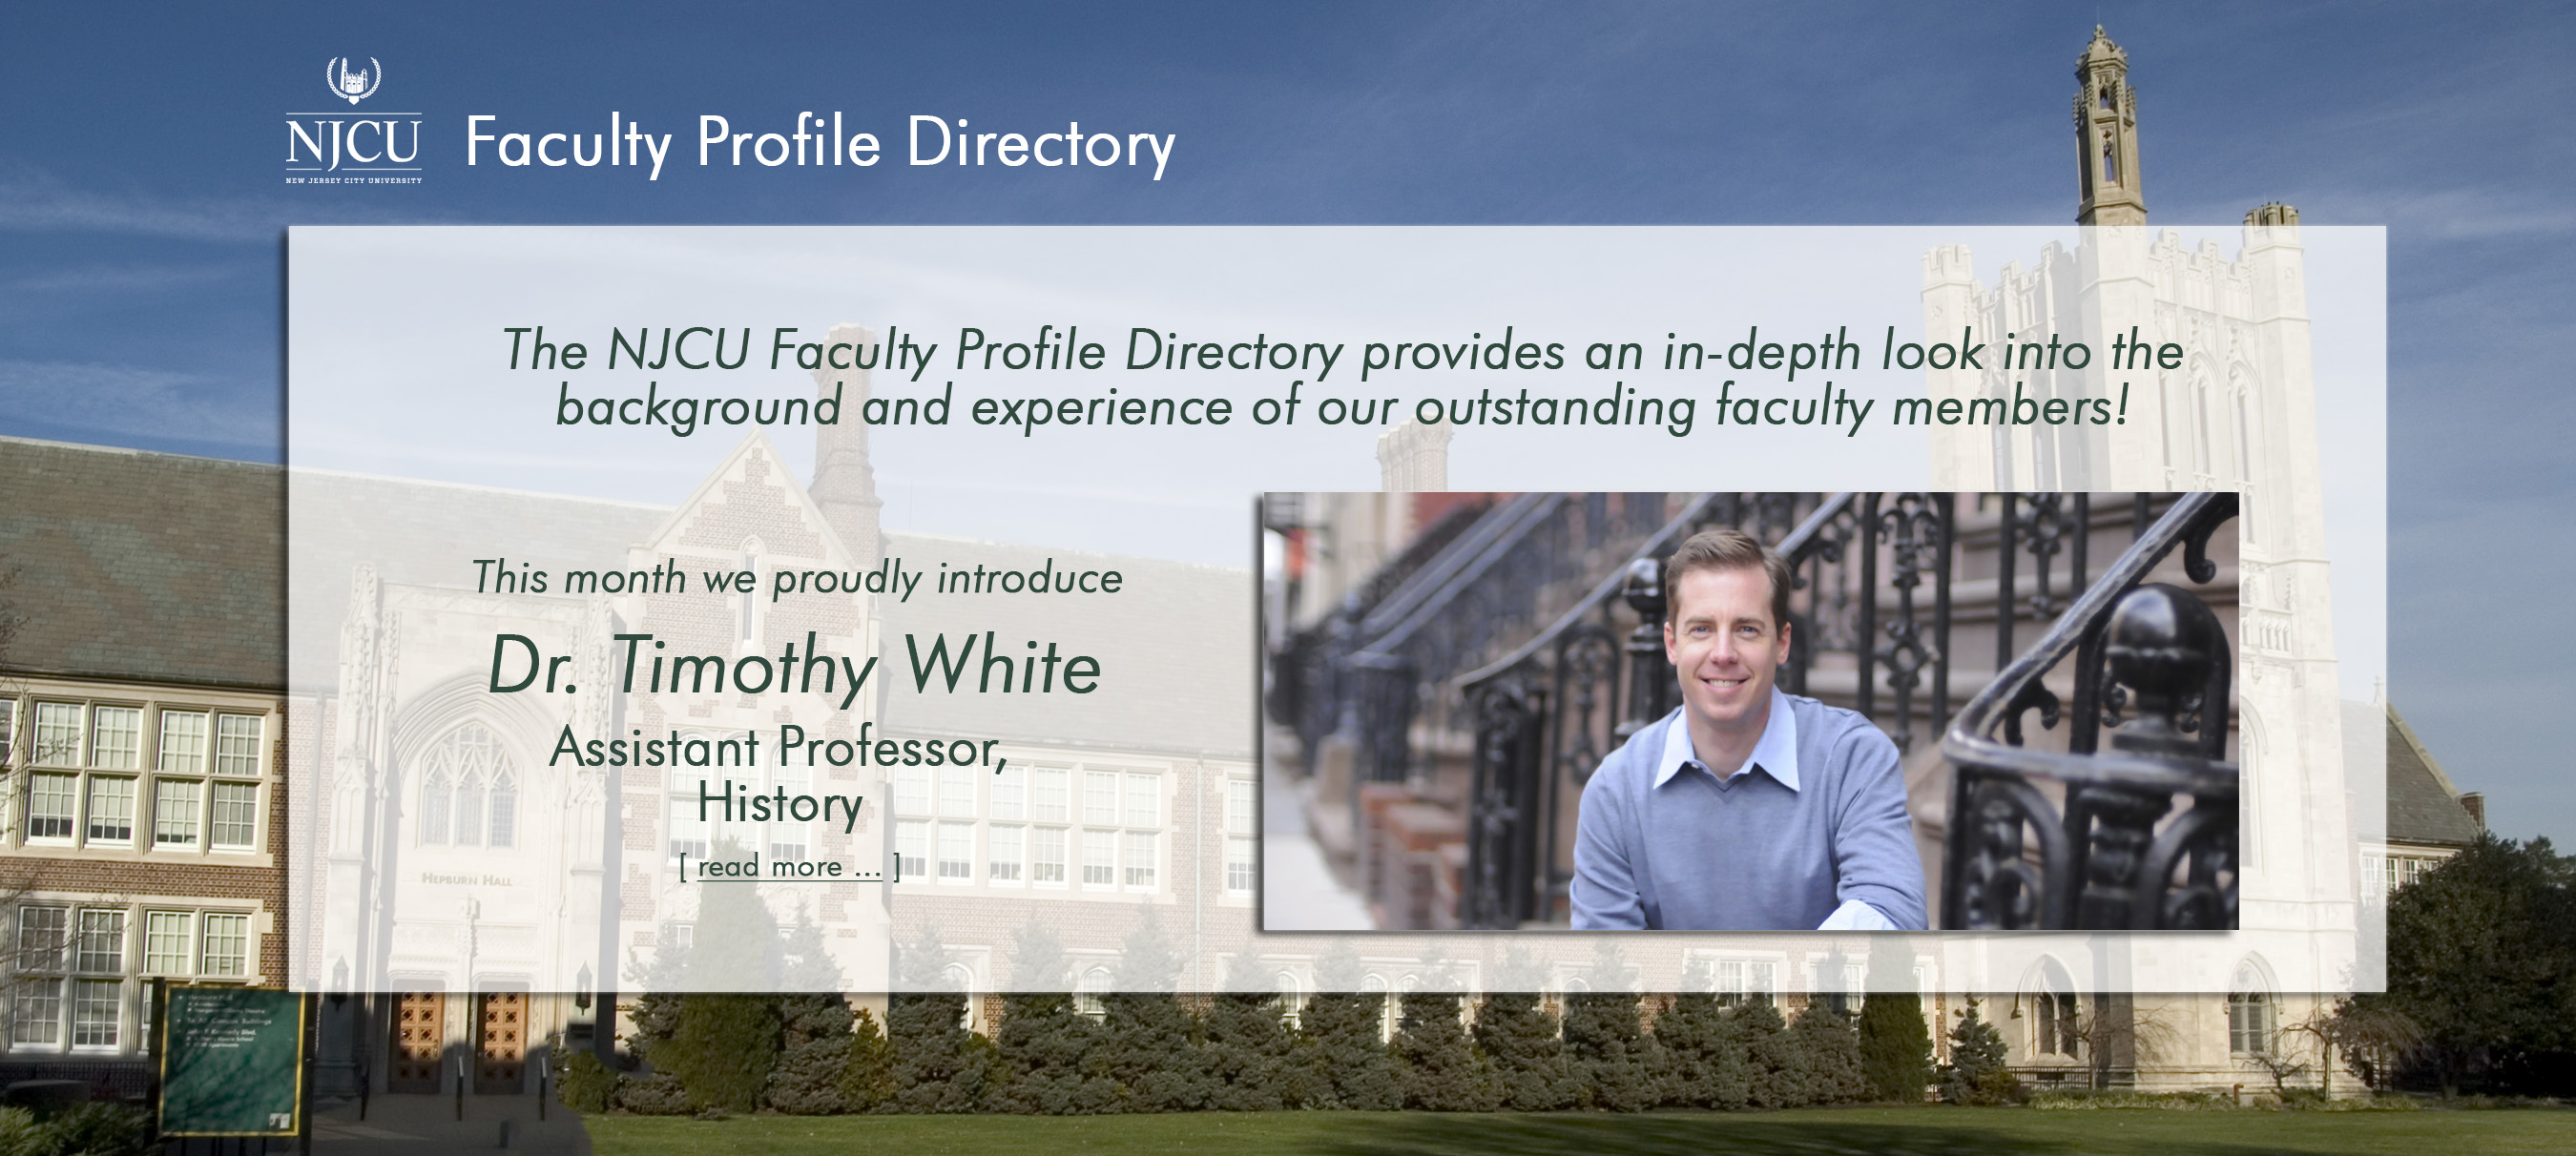 Dr. Timothy White, Assistant Professor, History, .. read more.